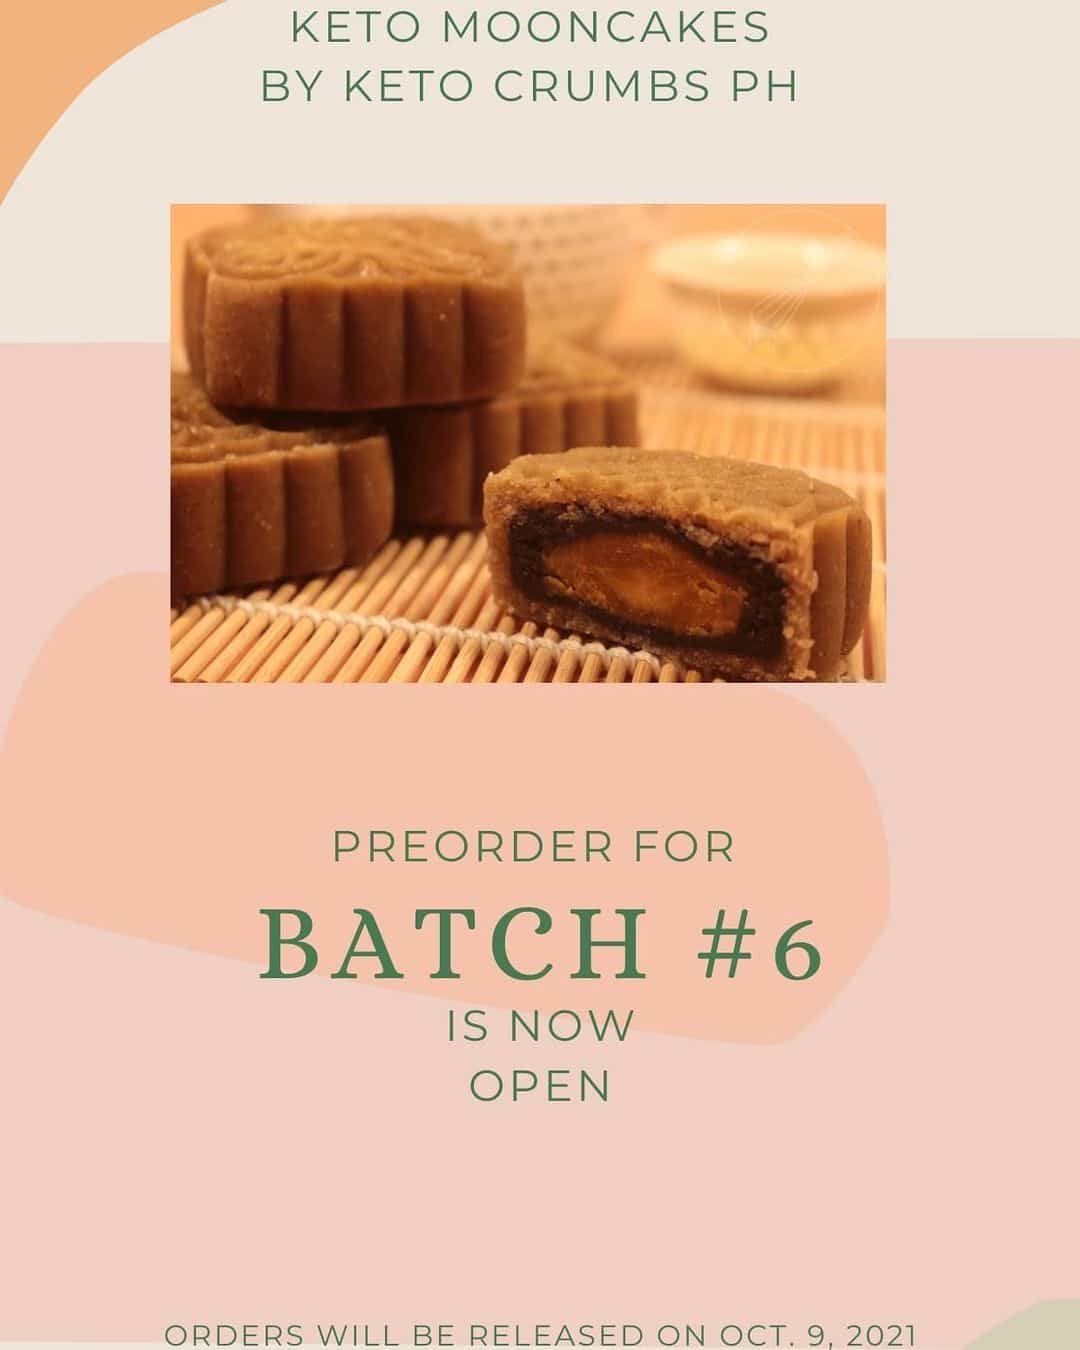 keto mooncake pre order for batch for is now open multip img fabc